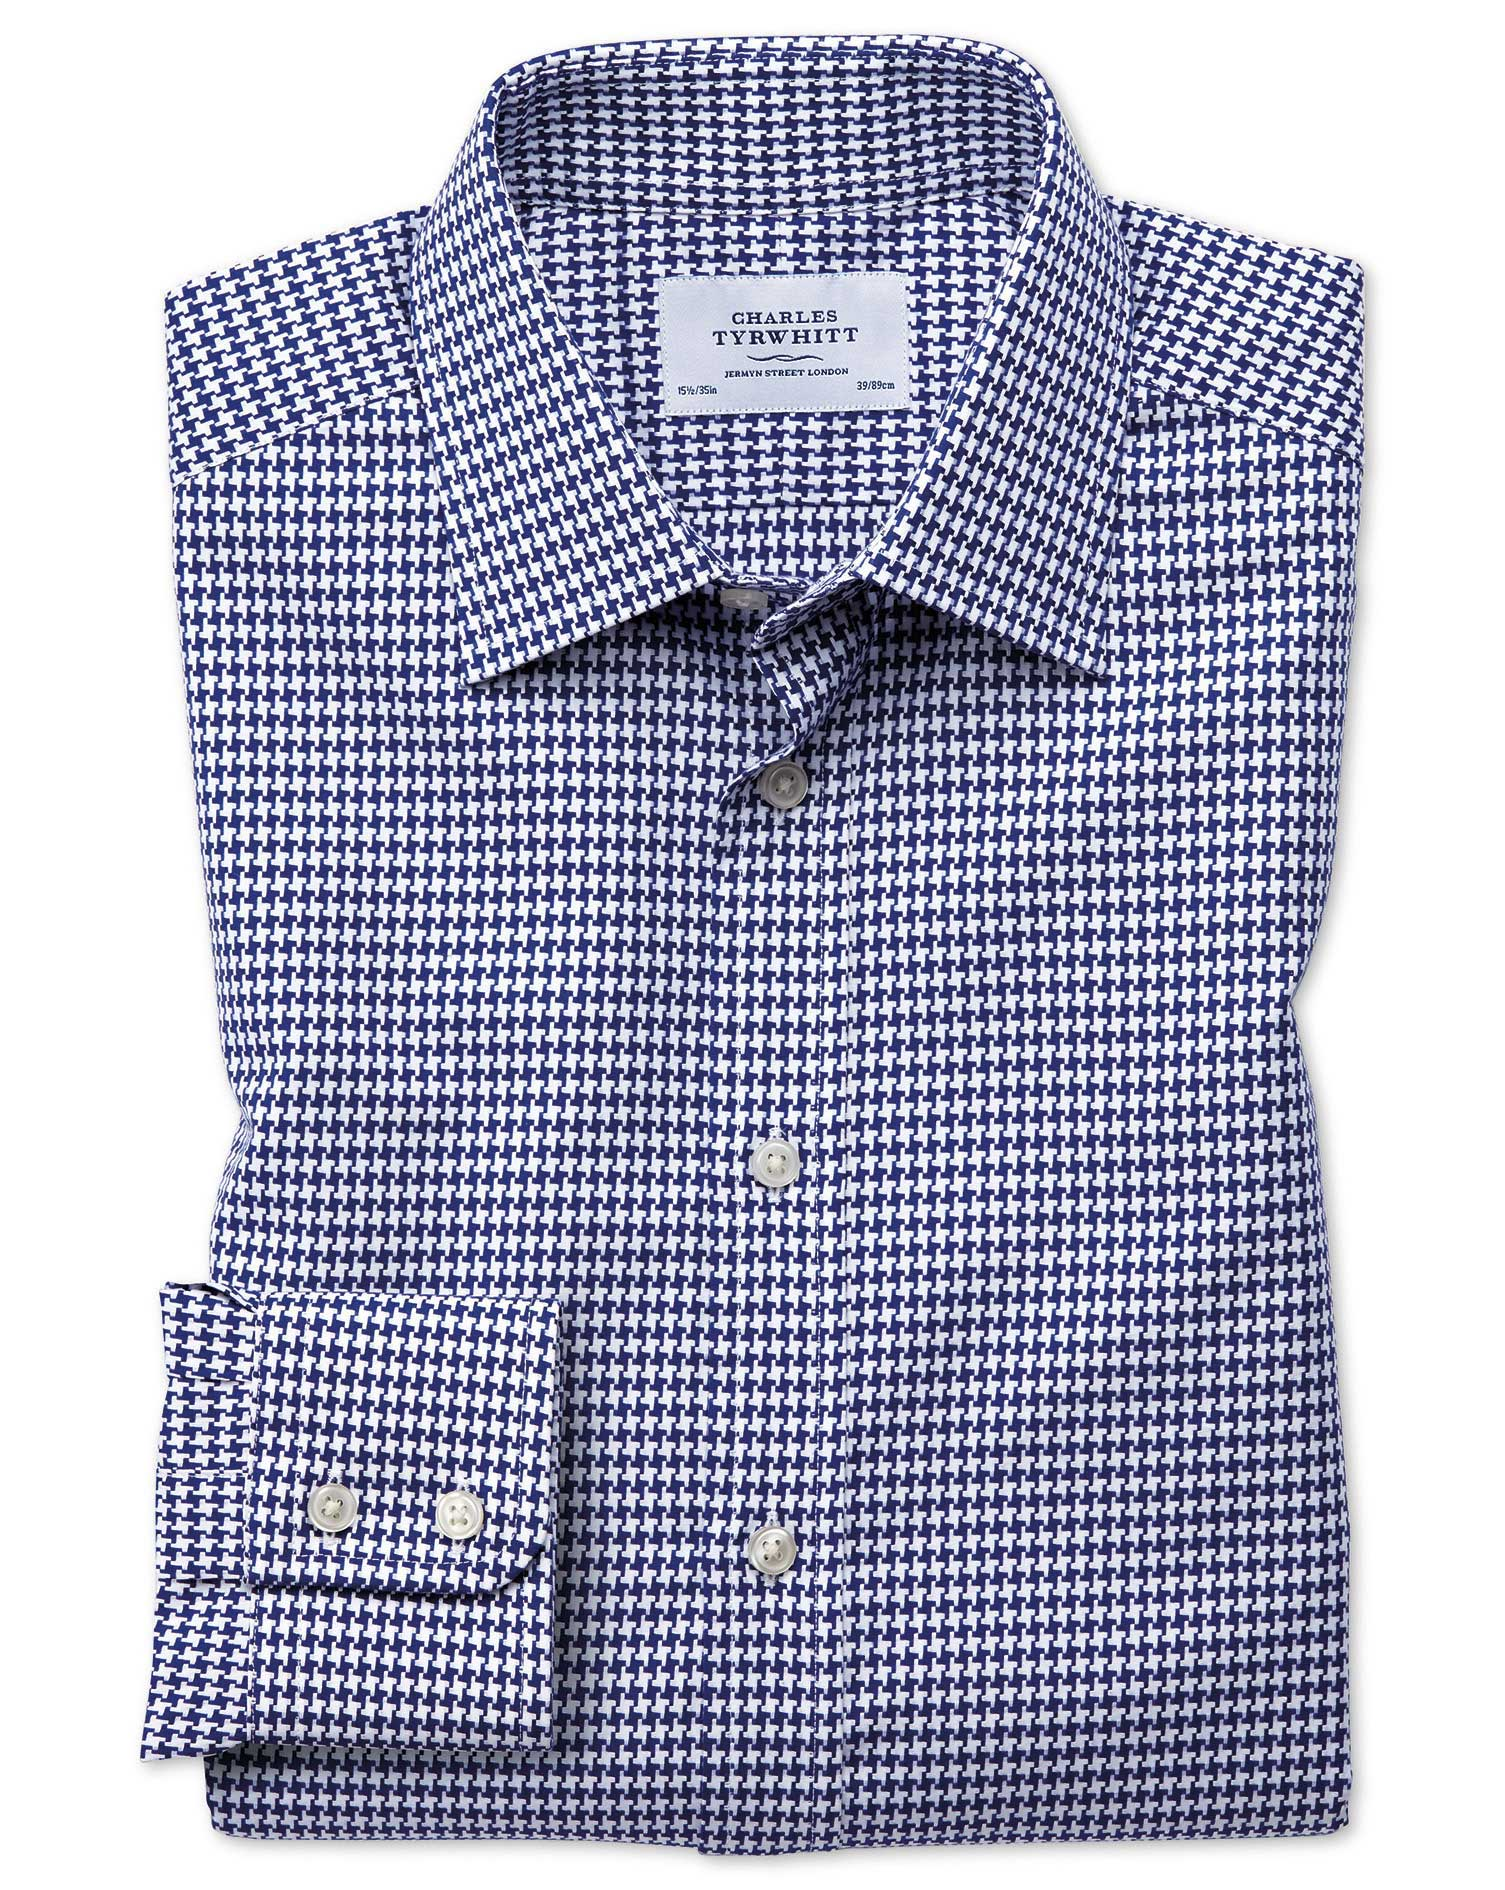 Slim Fit Large Puppytooth Blue Cotton Formal Shirt Single Cuff Size 16/33 by Charles Tyrwhitt